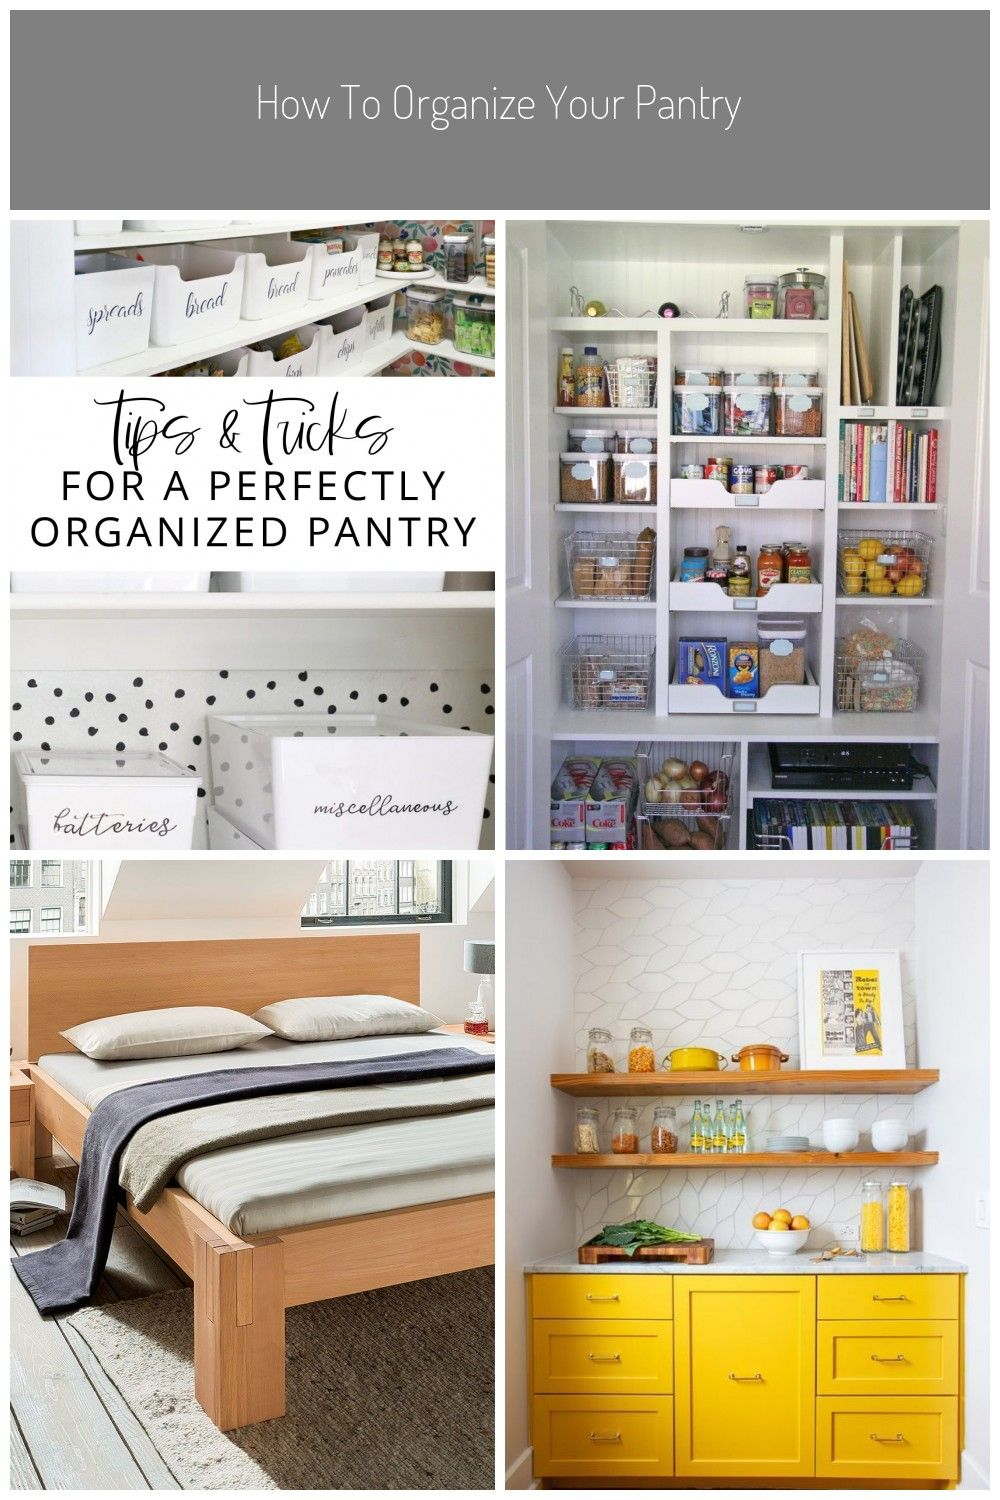 Pantry Organization 101 Here Are Our Best Tips And Products For Designing The Pantry Of Your Dreams S In 2020 Aufgeraumte Speisekammer Bett Mit Stauraum Design Ideen